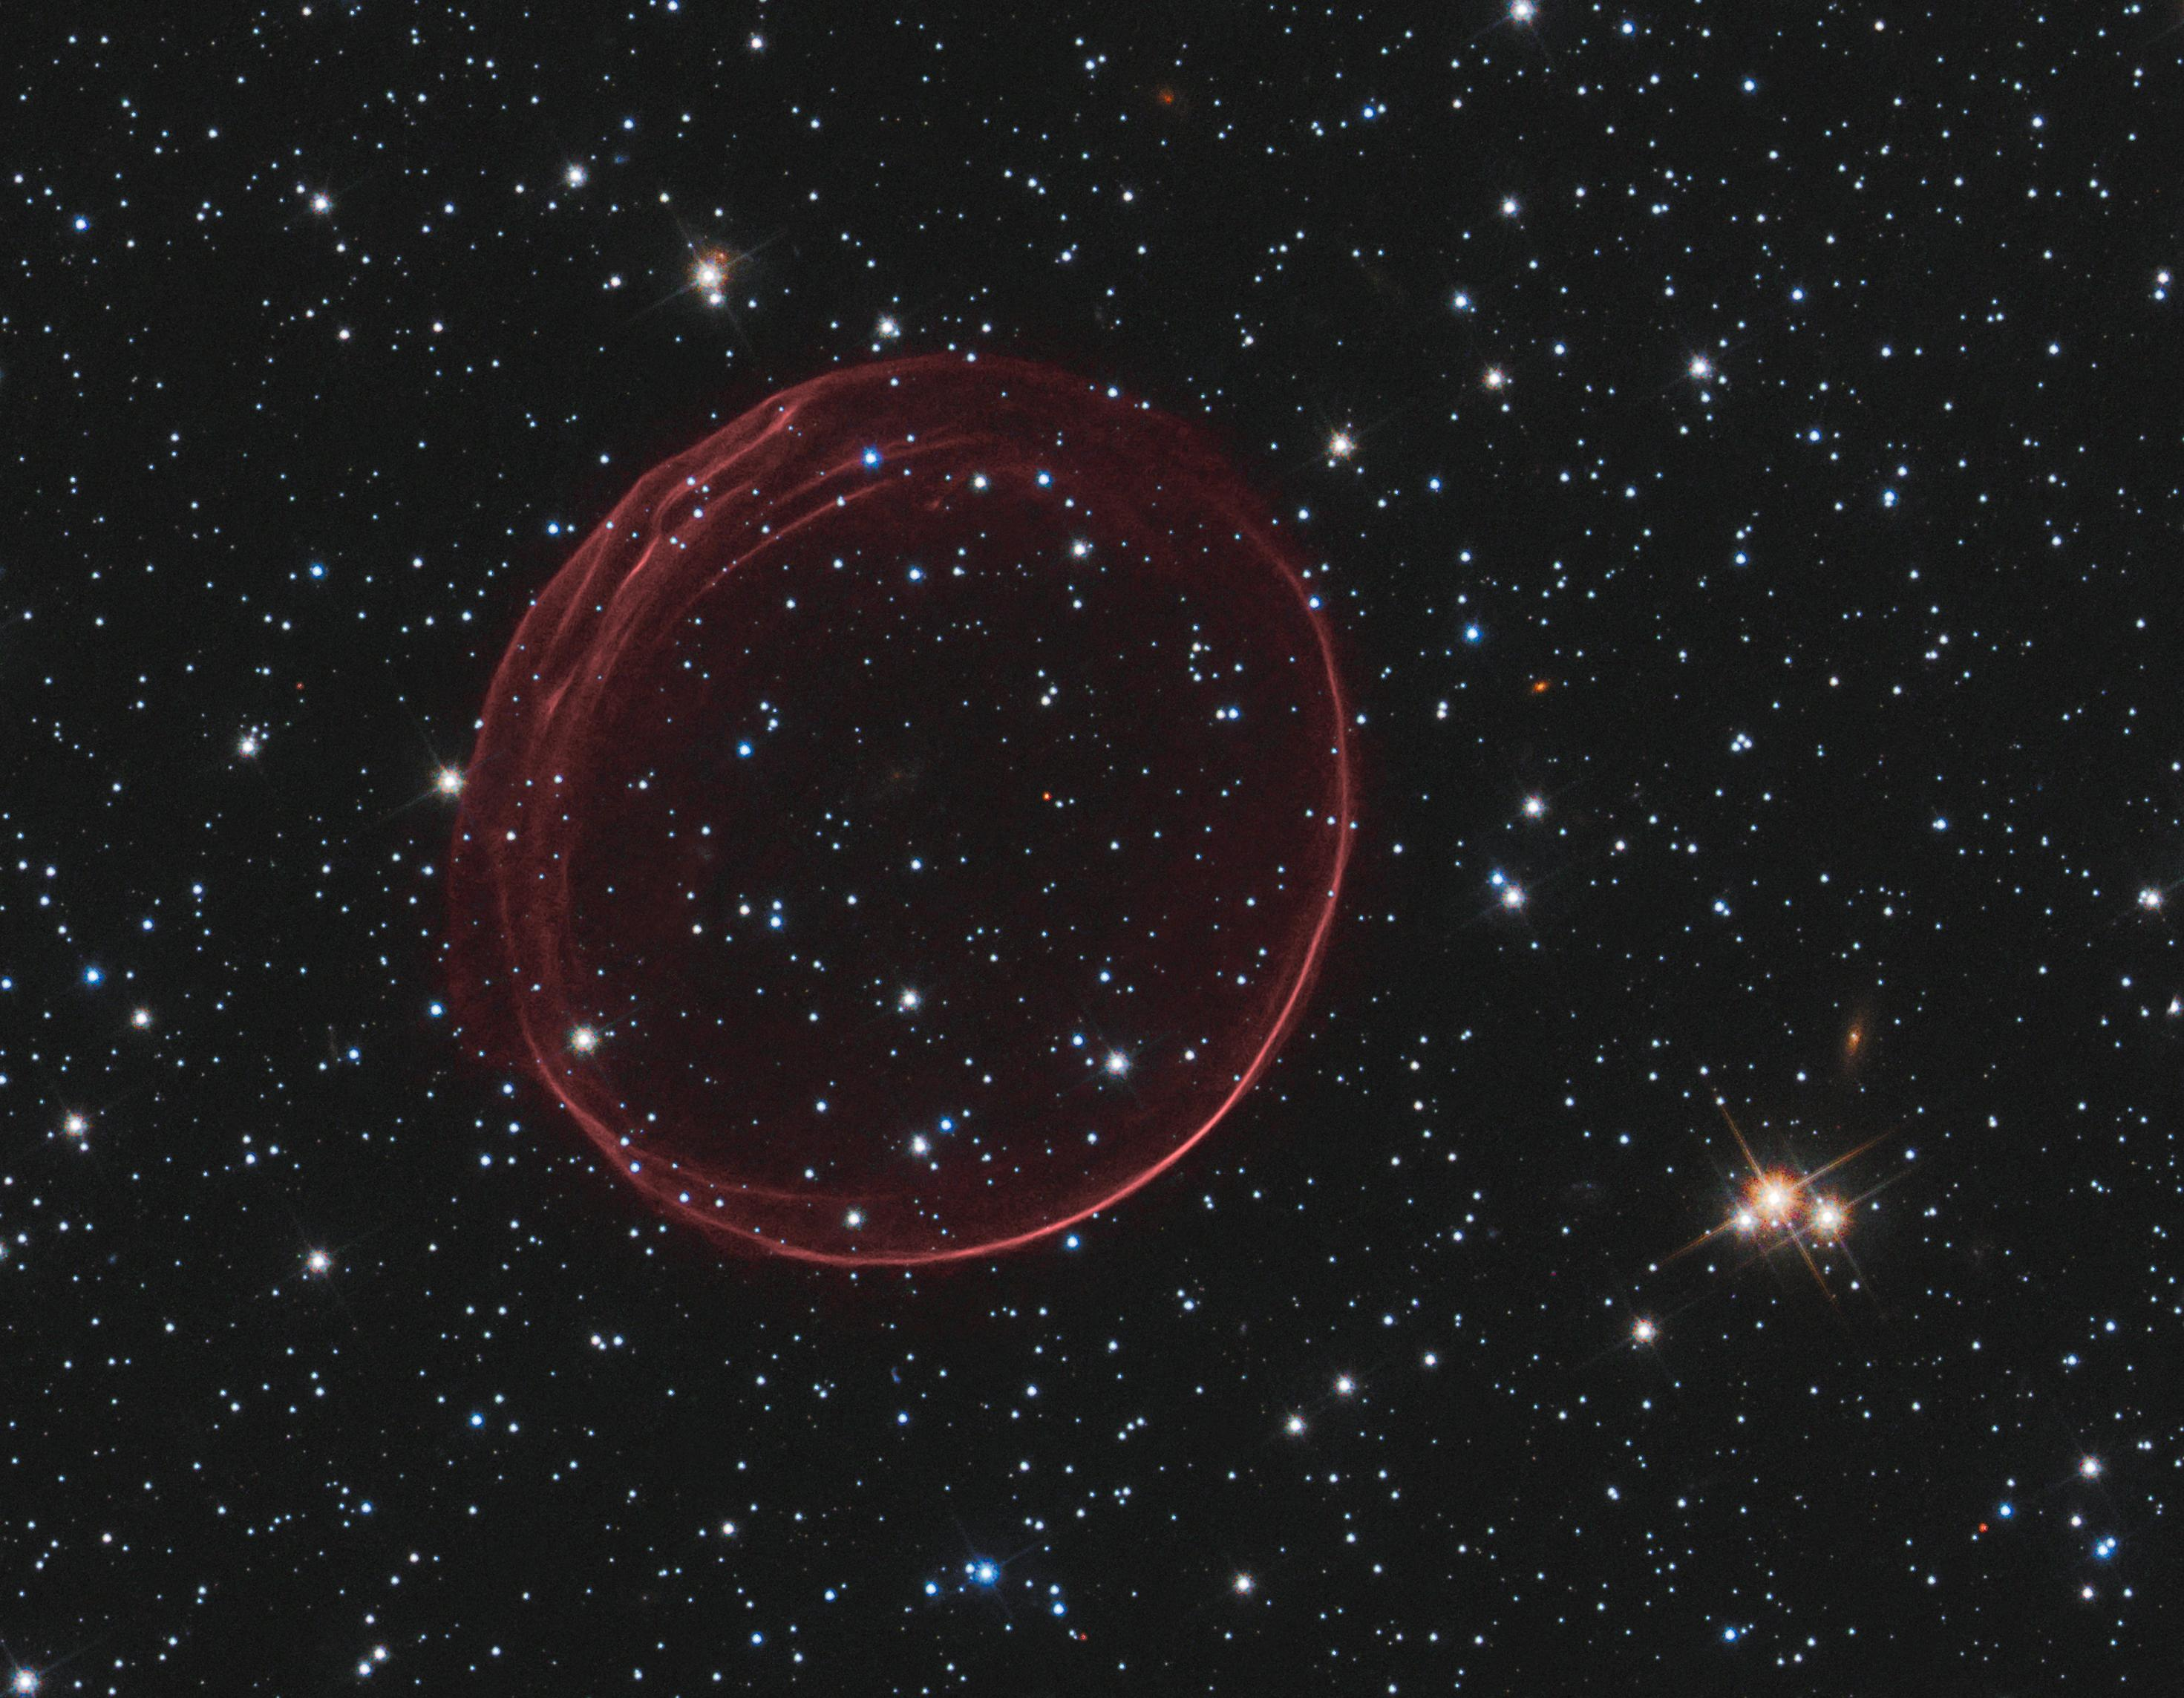 A delicate sphere of gas, photographed by NASA's Hubble Space Telescope, floats serenely in the depths of space. The pristine shell, or bubble, is the result of gas that is being shocked by the expanding blast wave from a supernova. Called SNR 0509-67.5 (or SNR 0509 for short), the bubble is the visible remnant of a powerful stellar explosion in the Large Magellanic Cloud (LMC), a small galaxy ...